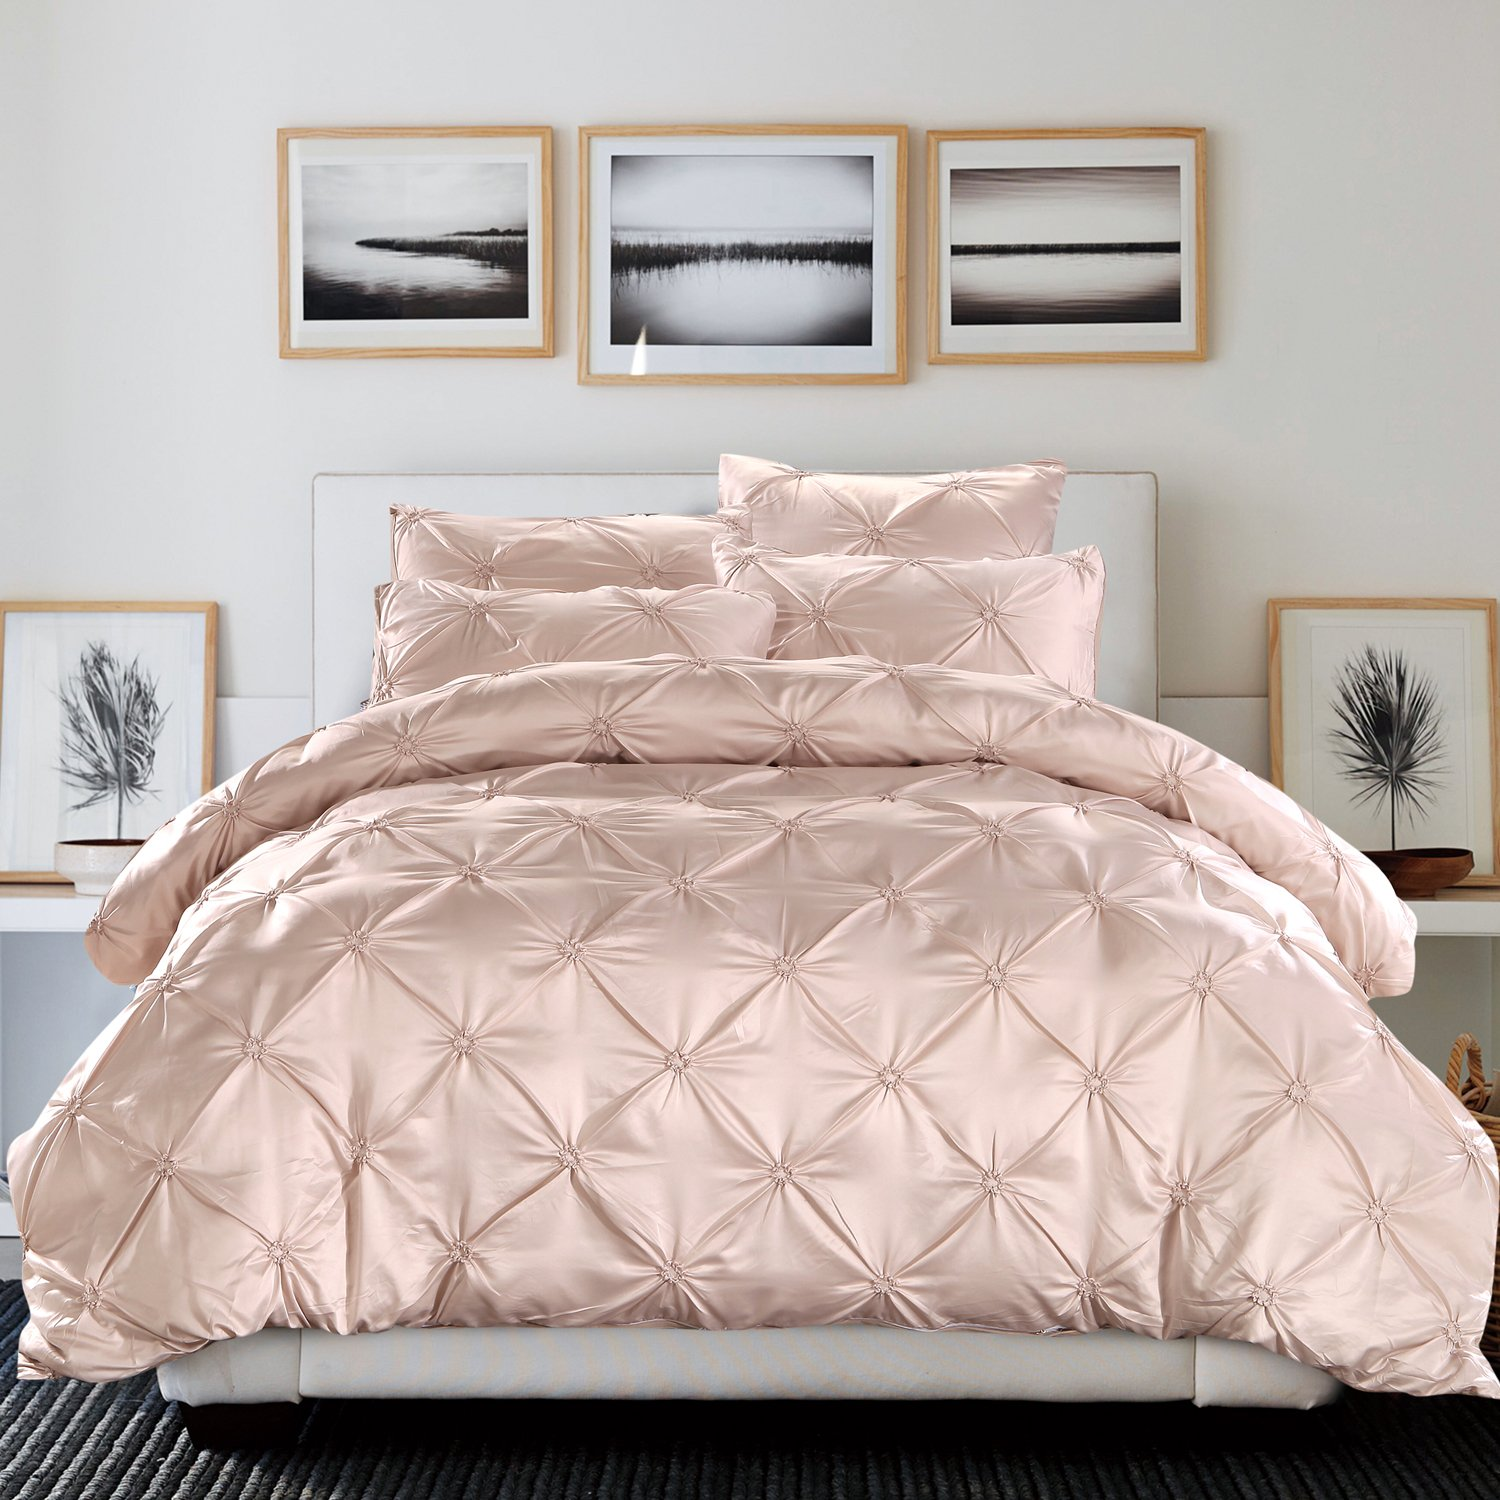 beige bedding sets and comforters – ease bedding with style - tencel cotton queen size luxurious pinch pleat decorative pintuck beddingset beige